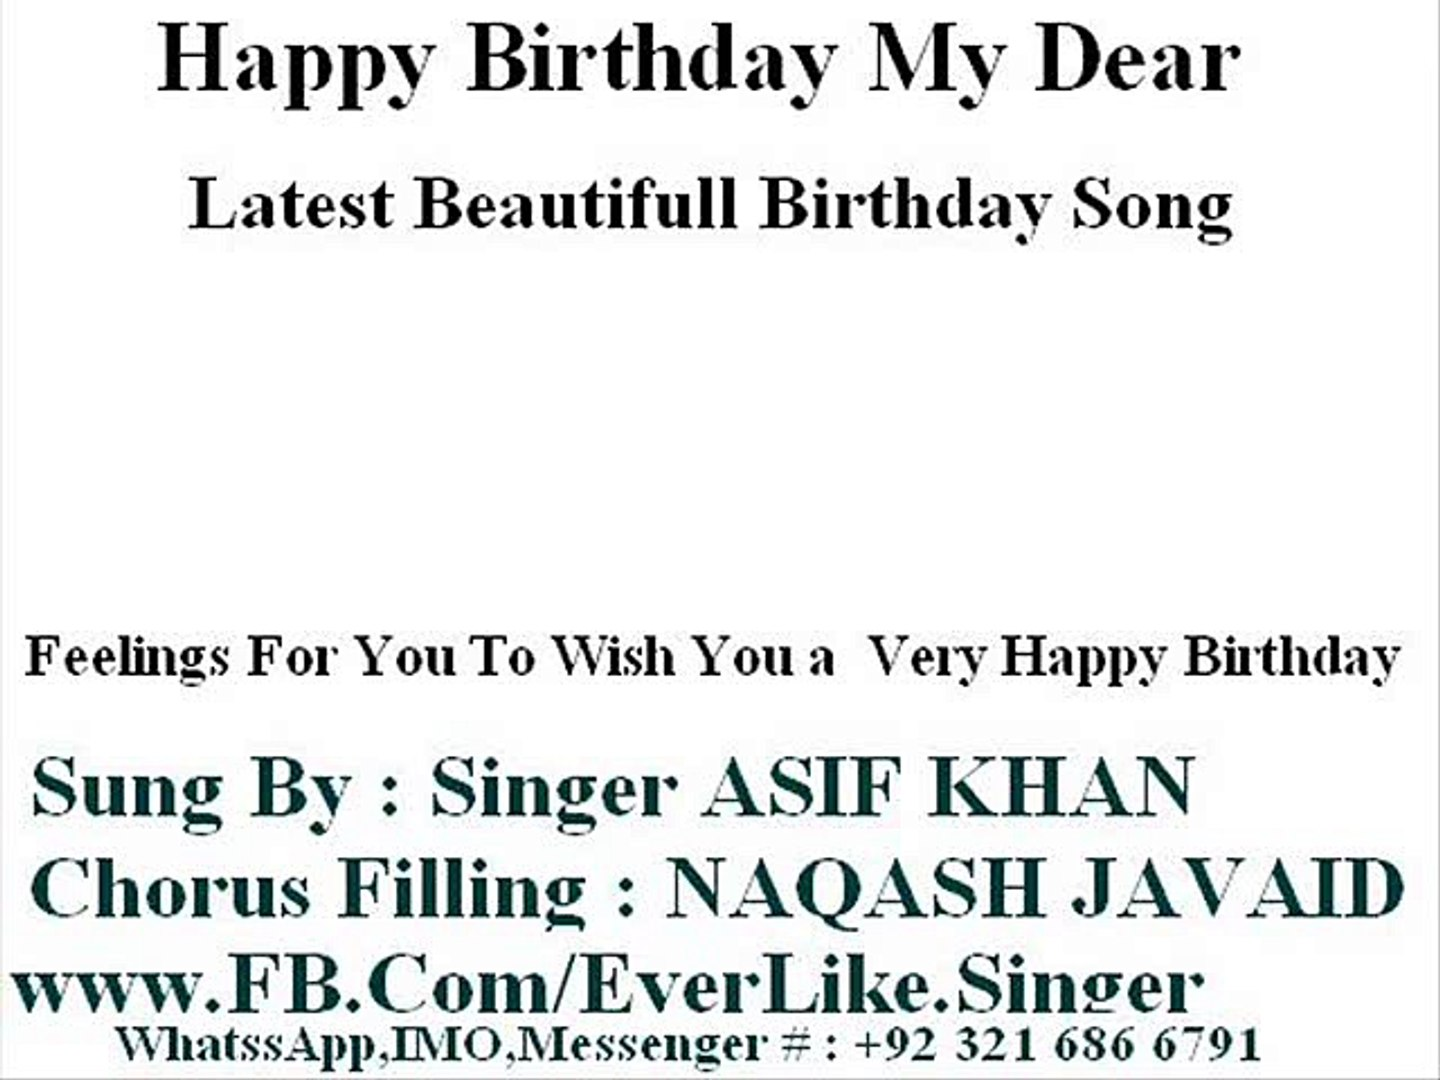 HAPPY BIRTHDAY SONG BY SINGER ASIF KHAN - video dailymotion